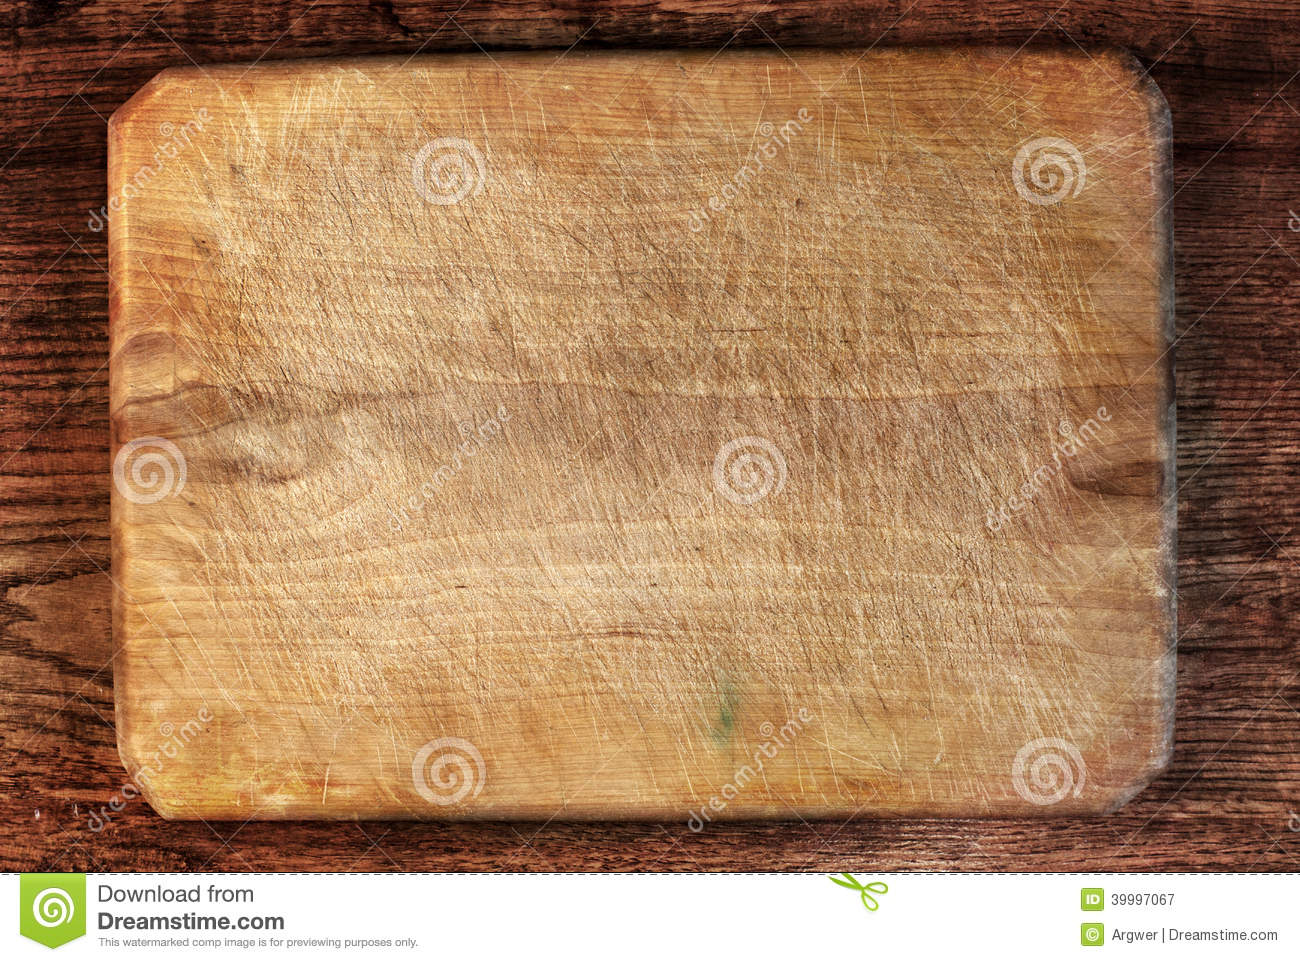 old wood template background or texture stock image - image of desk